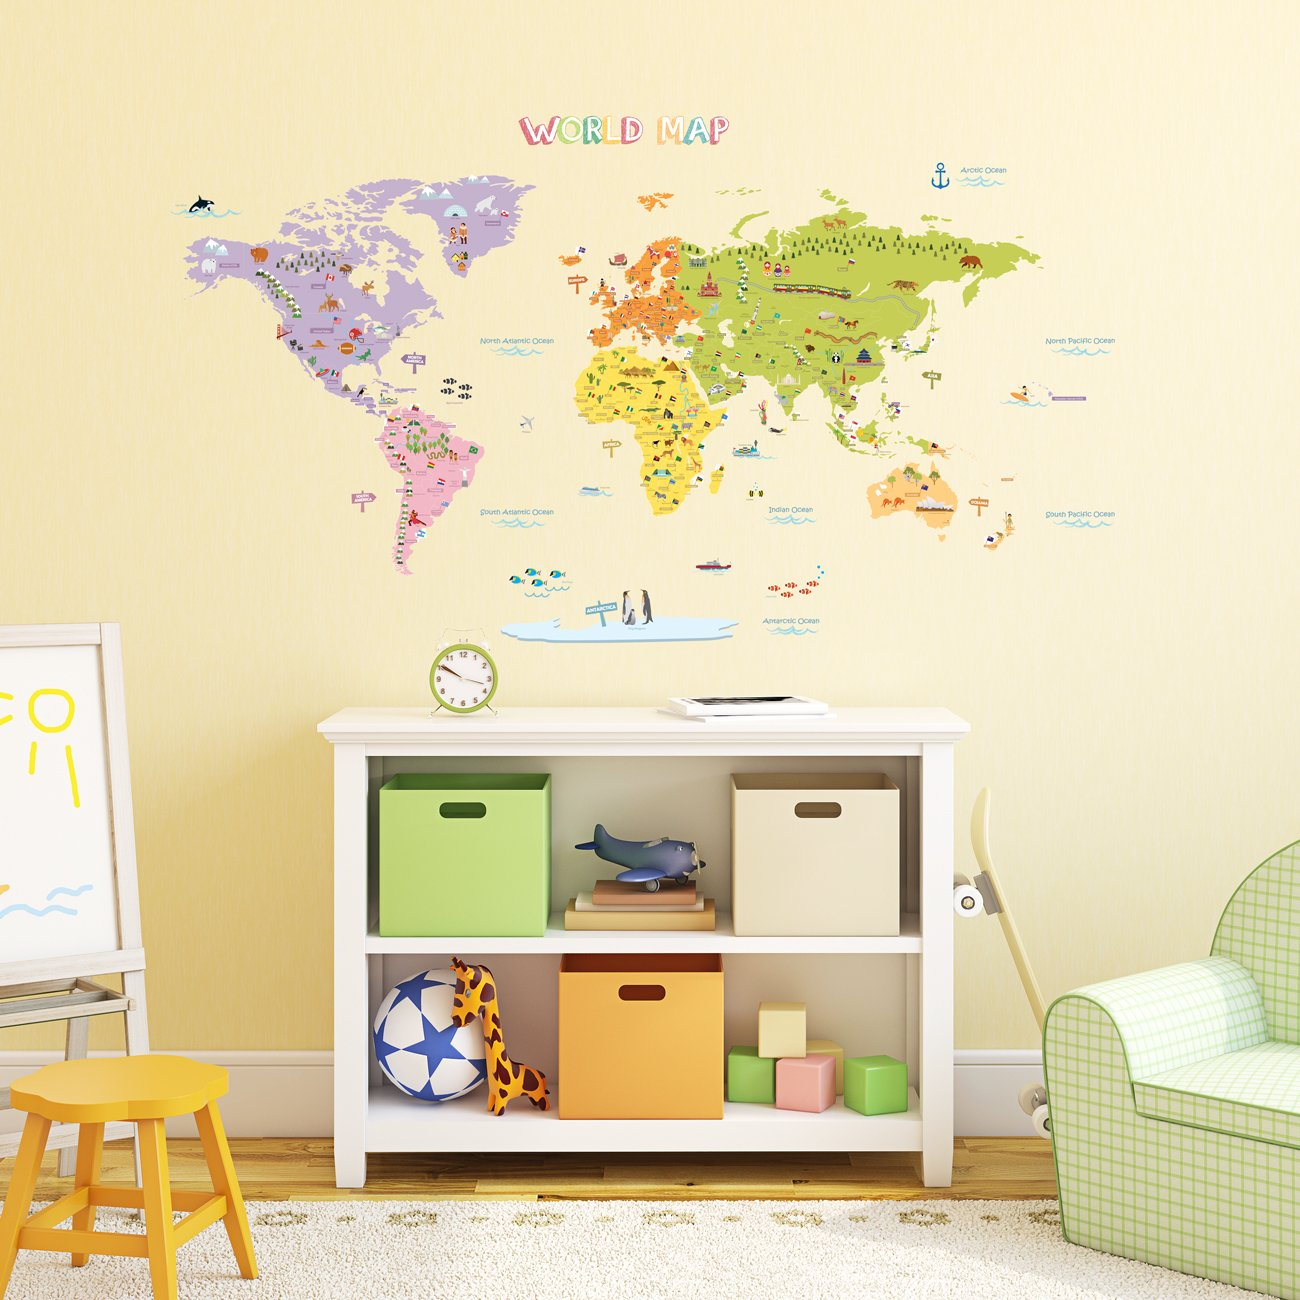 Decowall DMT-1306 Colorful World Map Peel and Stick Nursery Kids ...